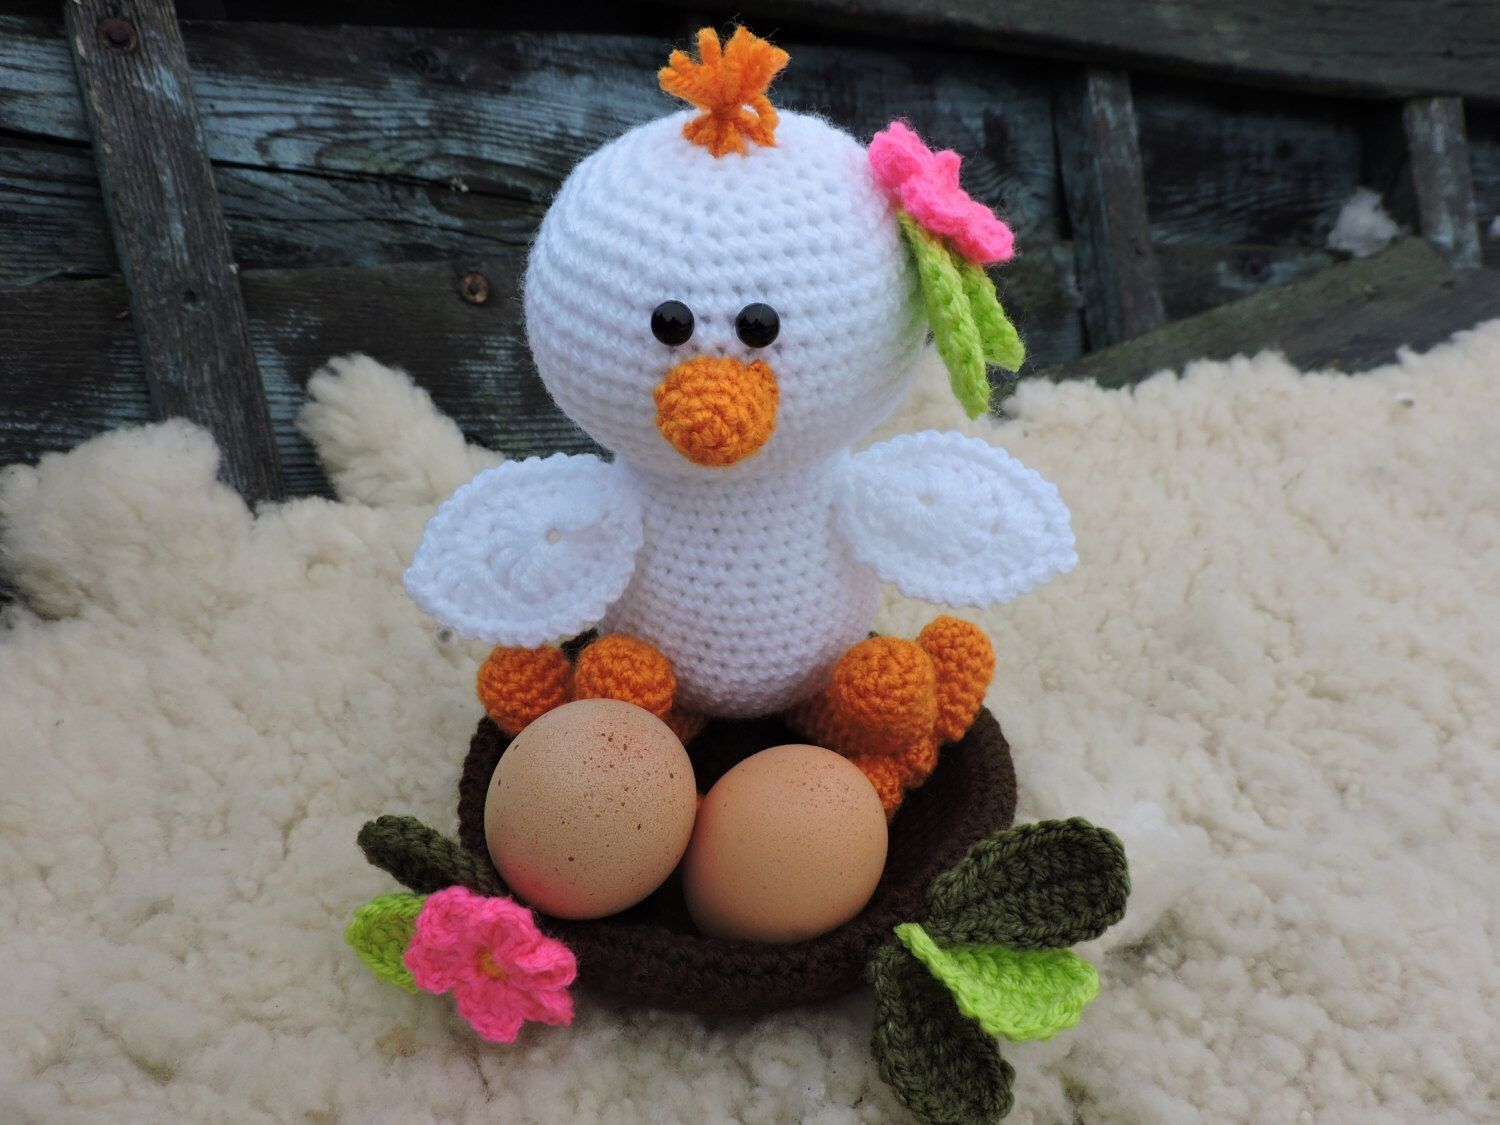 Amigurumi Crochet Books : Amigurumi crochet pattern the easter baby chicks crochet bird e